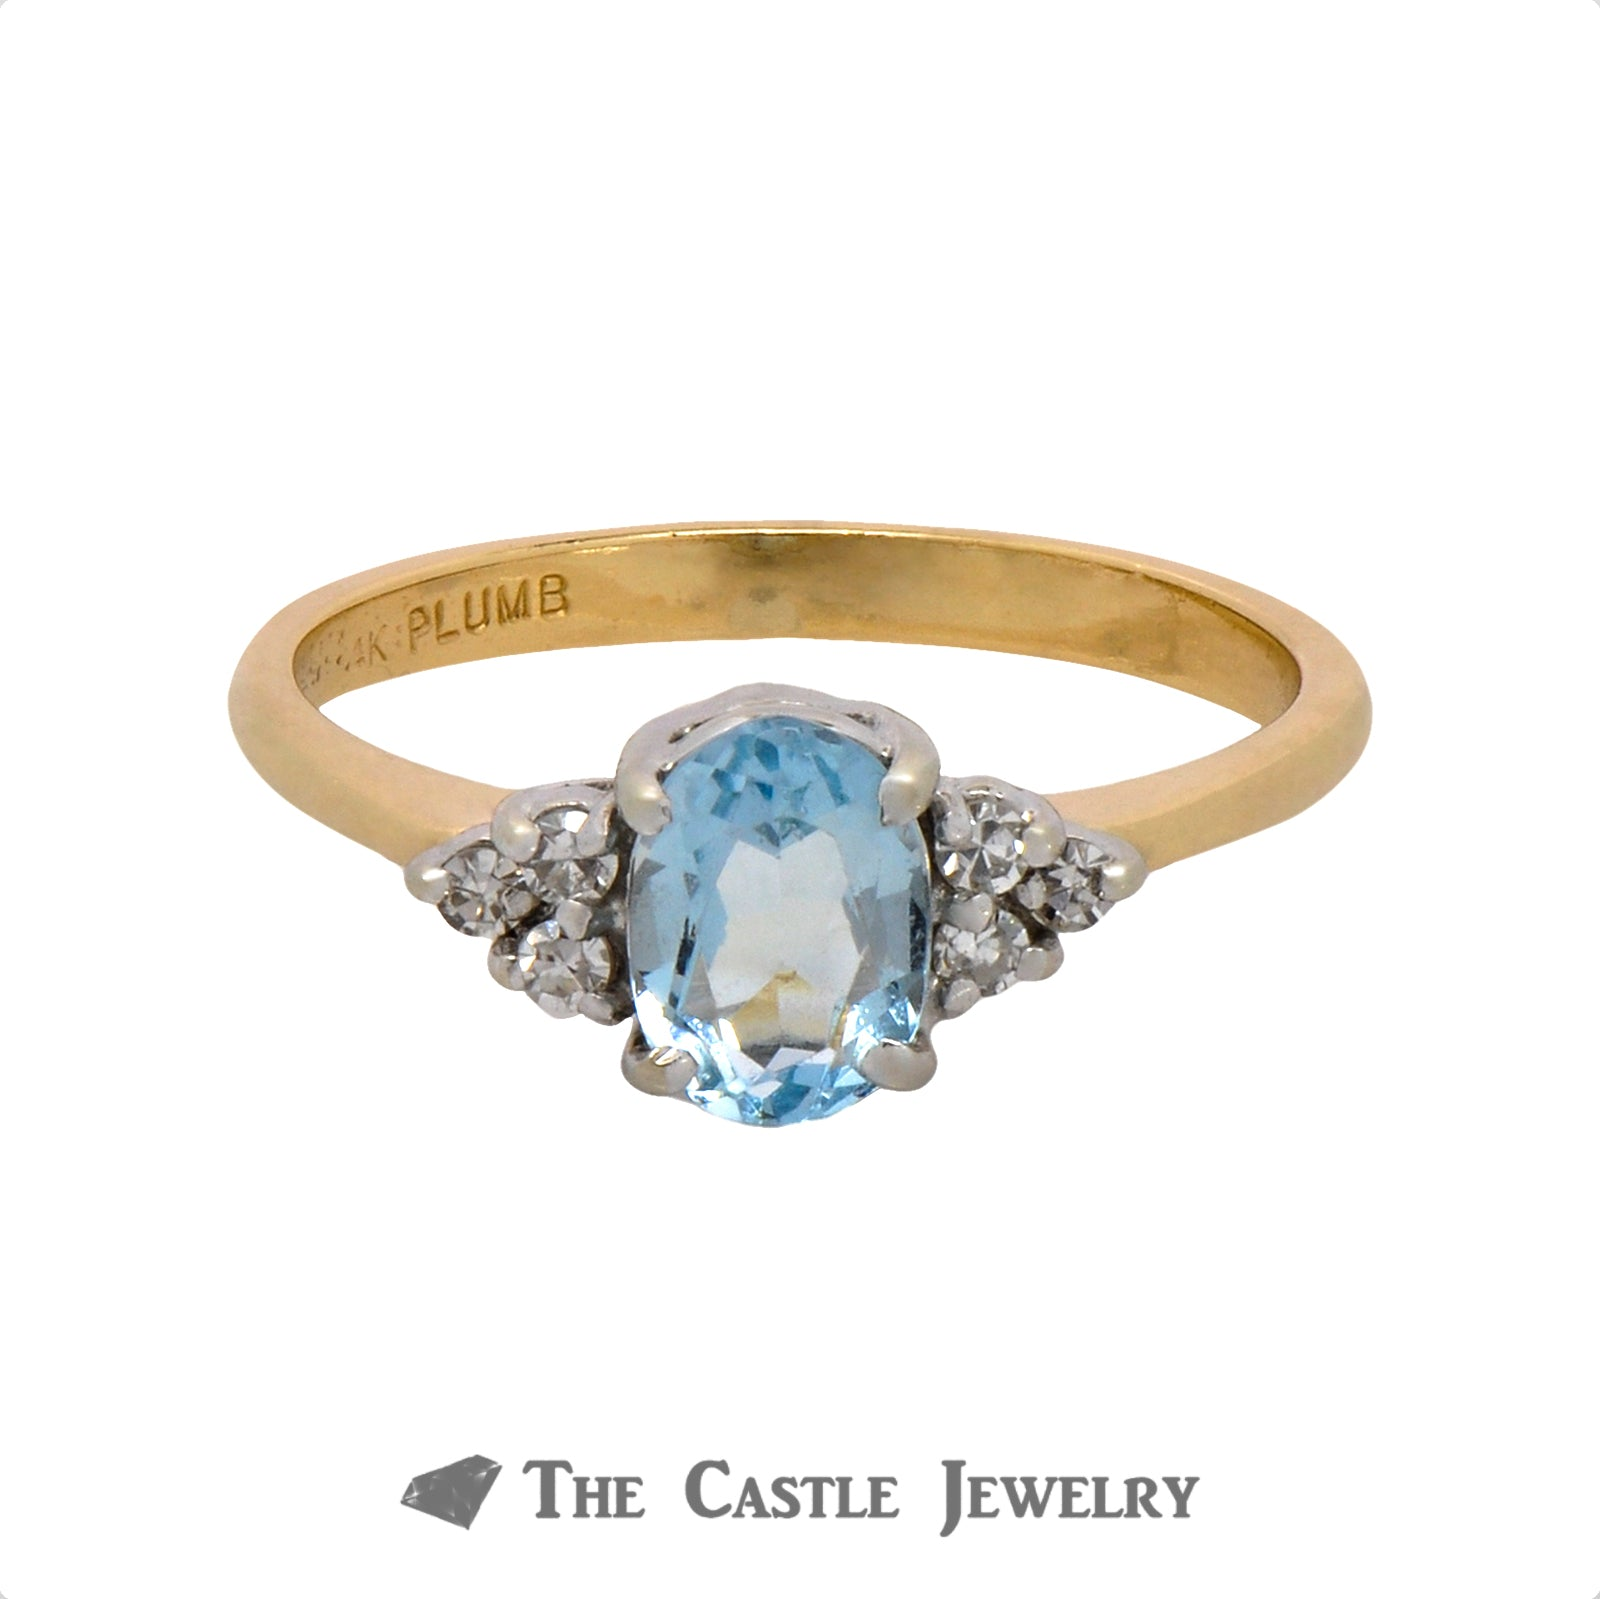 Oval Aquamarine Ring with .09cttw Double Diamond Cluster Accents in 14k Yellow Gold